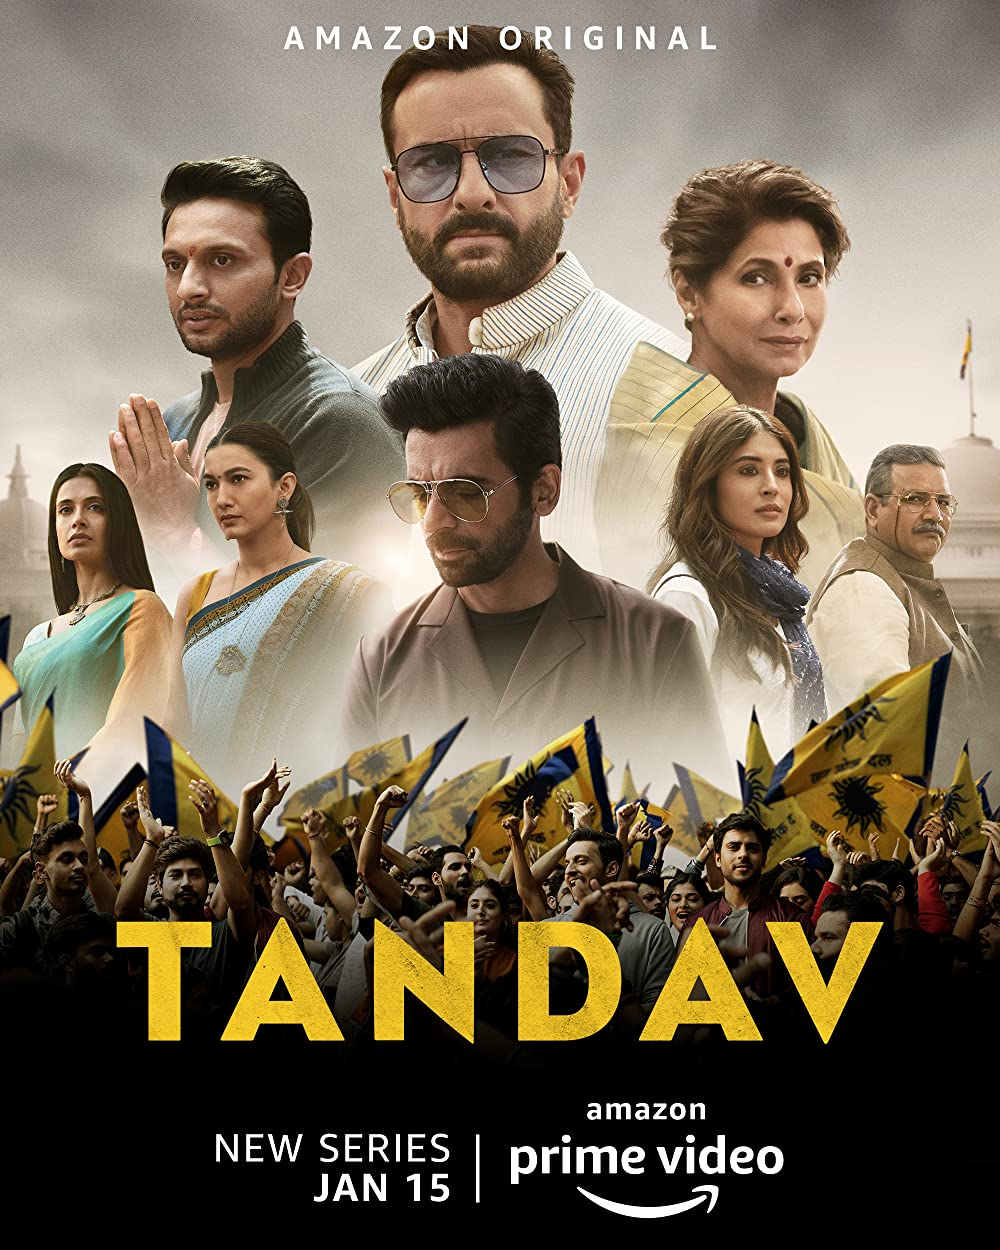 Tandav S01 2021 Hindi Amazon Original Complete Web Series 480p & 720p HDRip Download